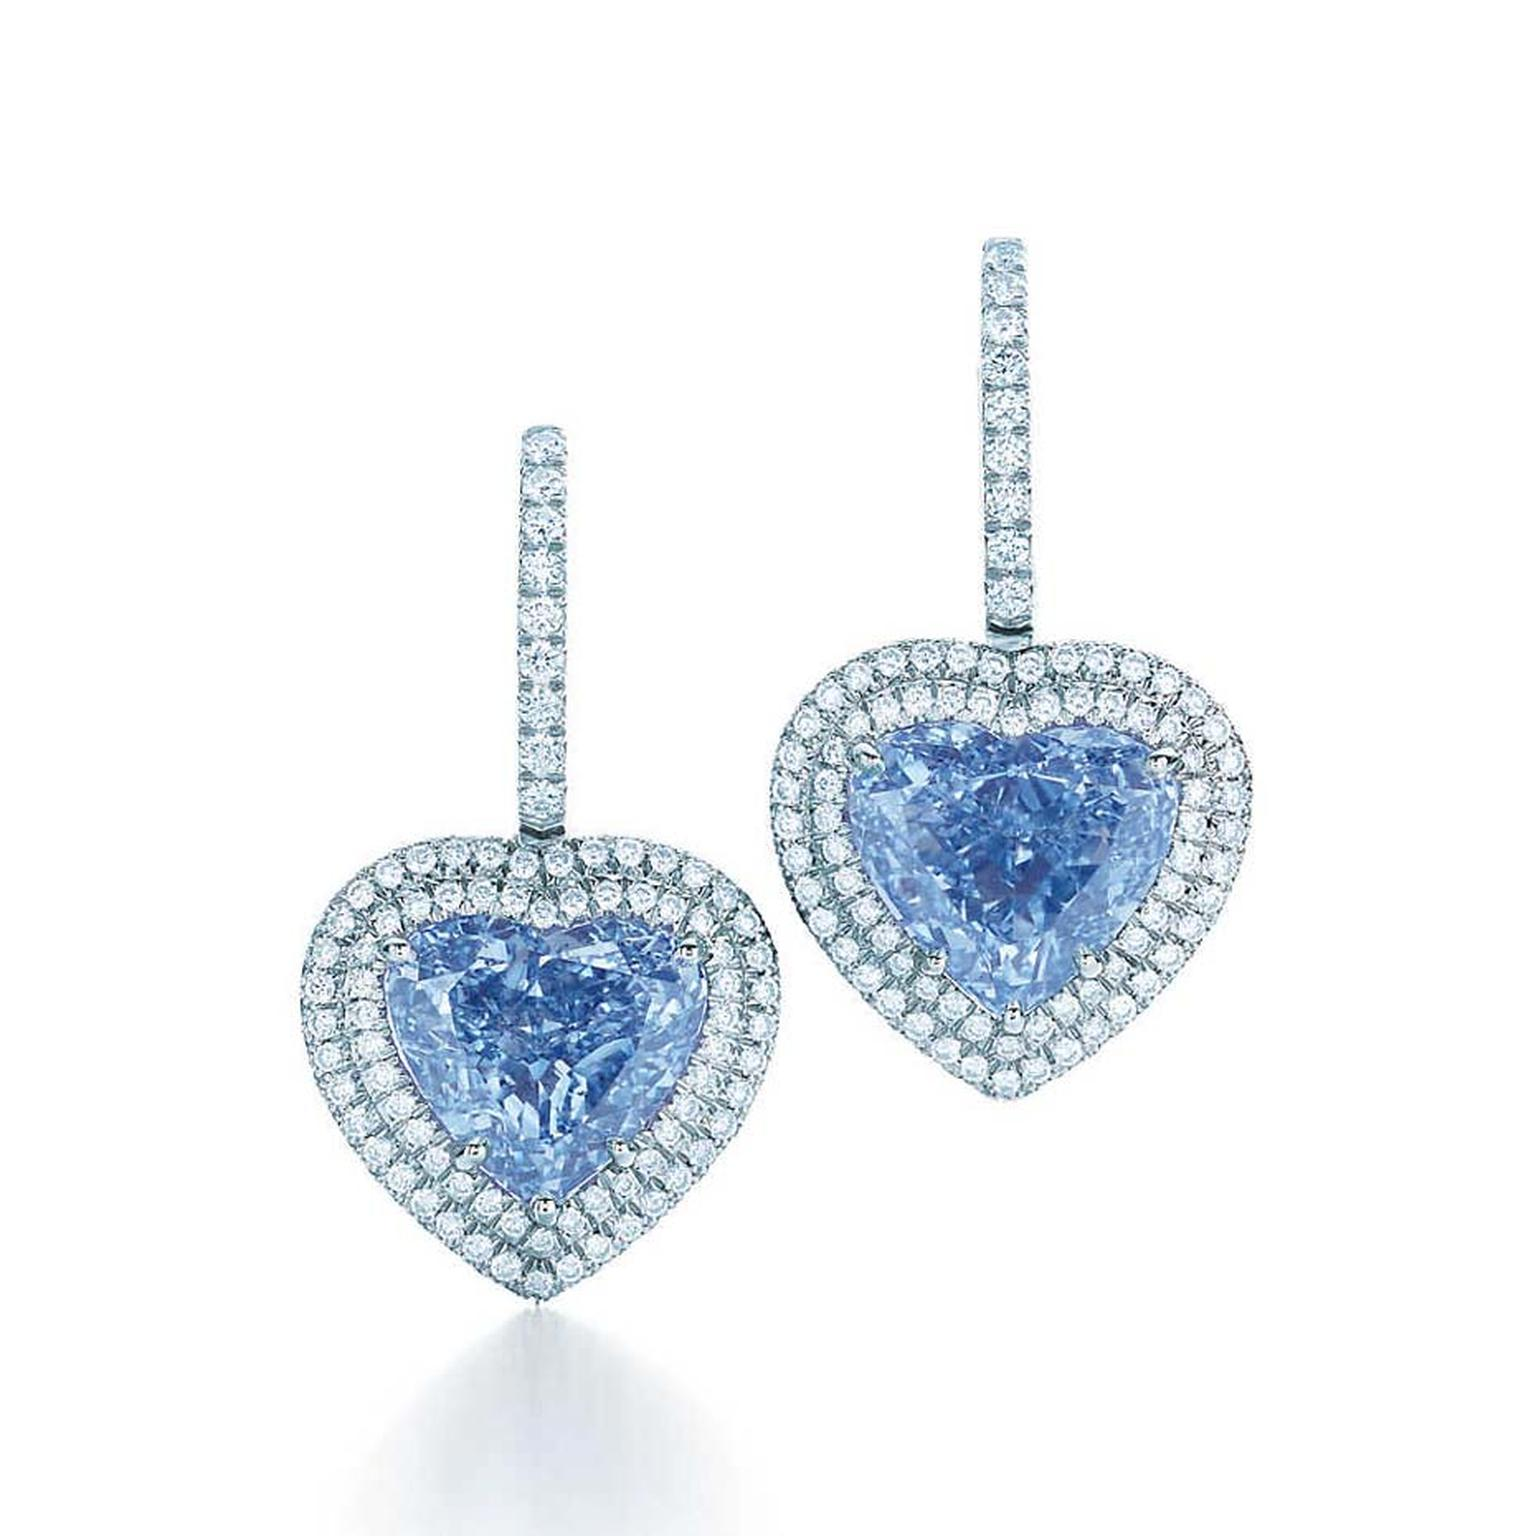 This Exceptionally Rare Pair Of Heart Shaped Fancy Blue Diamond Earrings From Tiffany